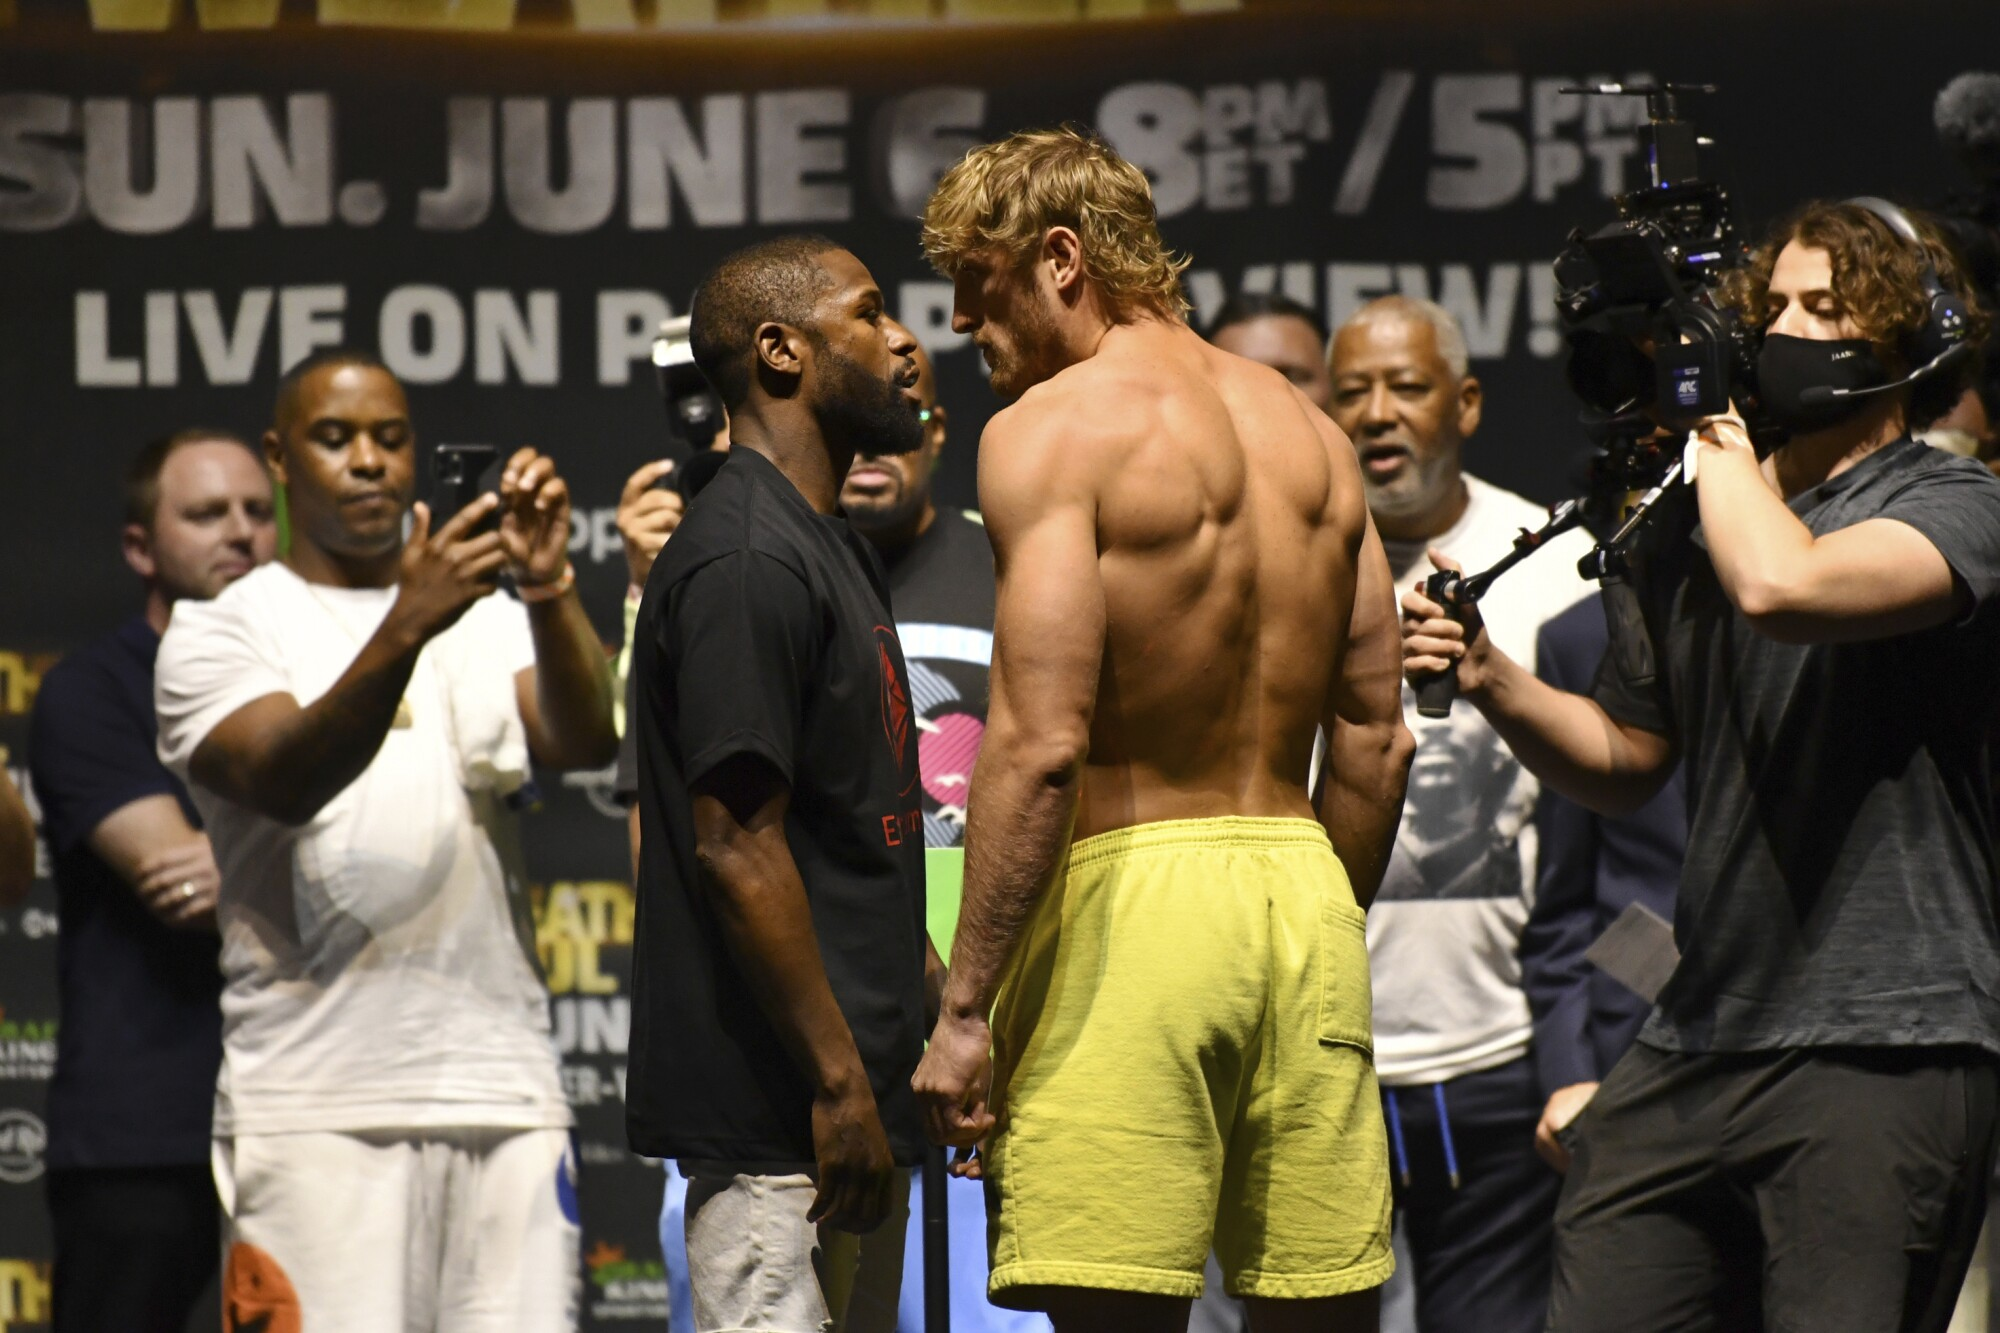 Logan Paul vs. Floyd Mayweather Jr.: How to watch, betting odds, news and  analysis - Los Angeles Times